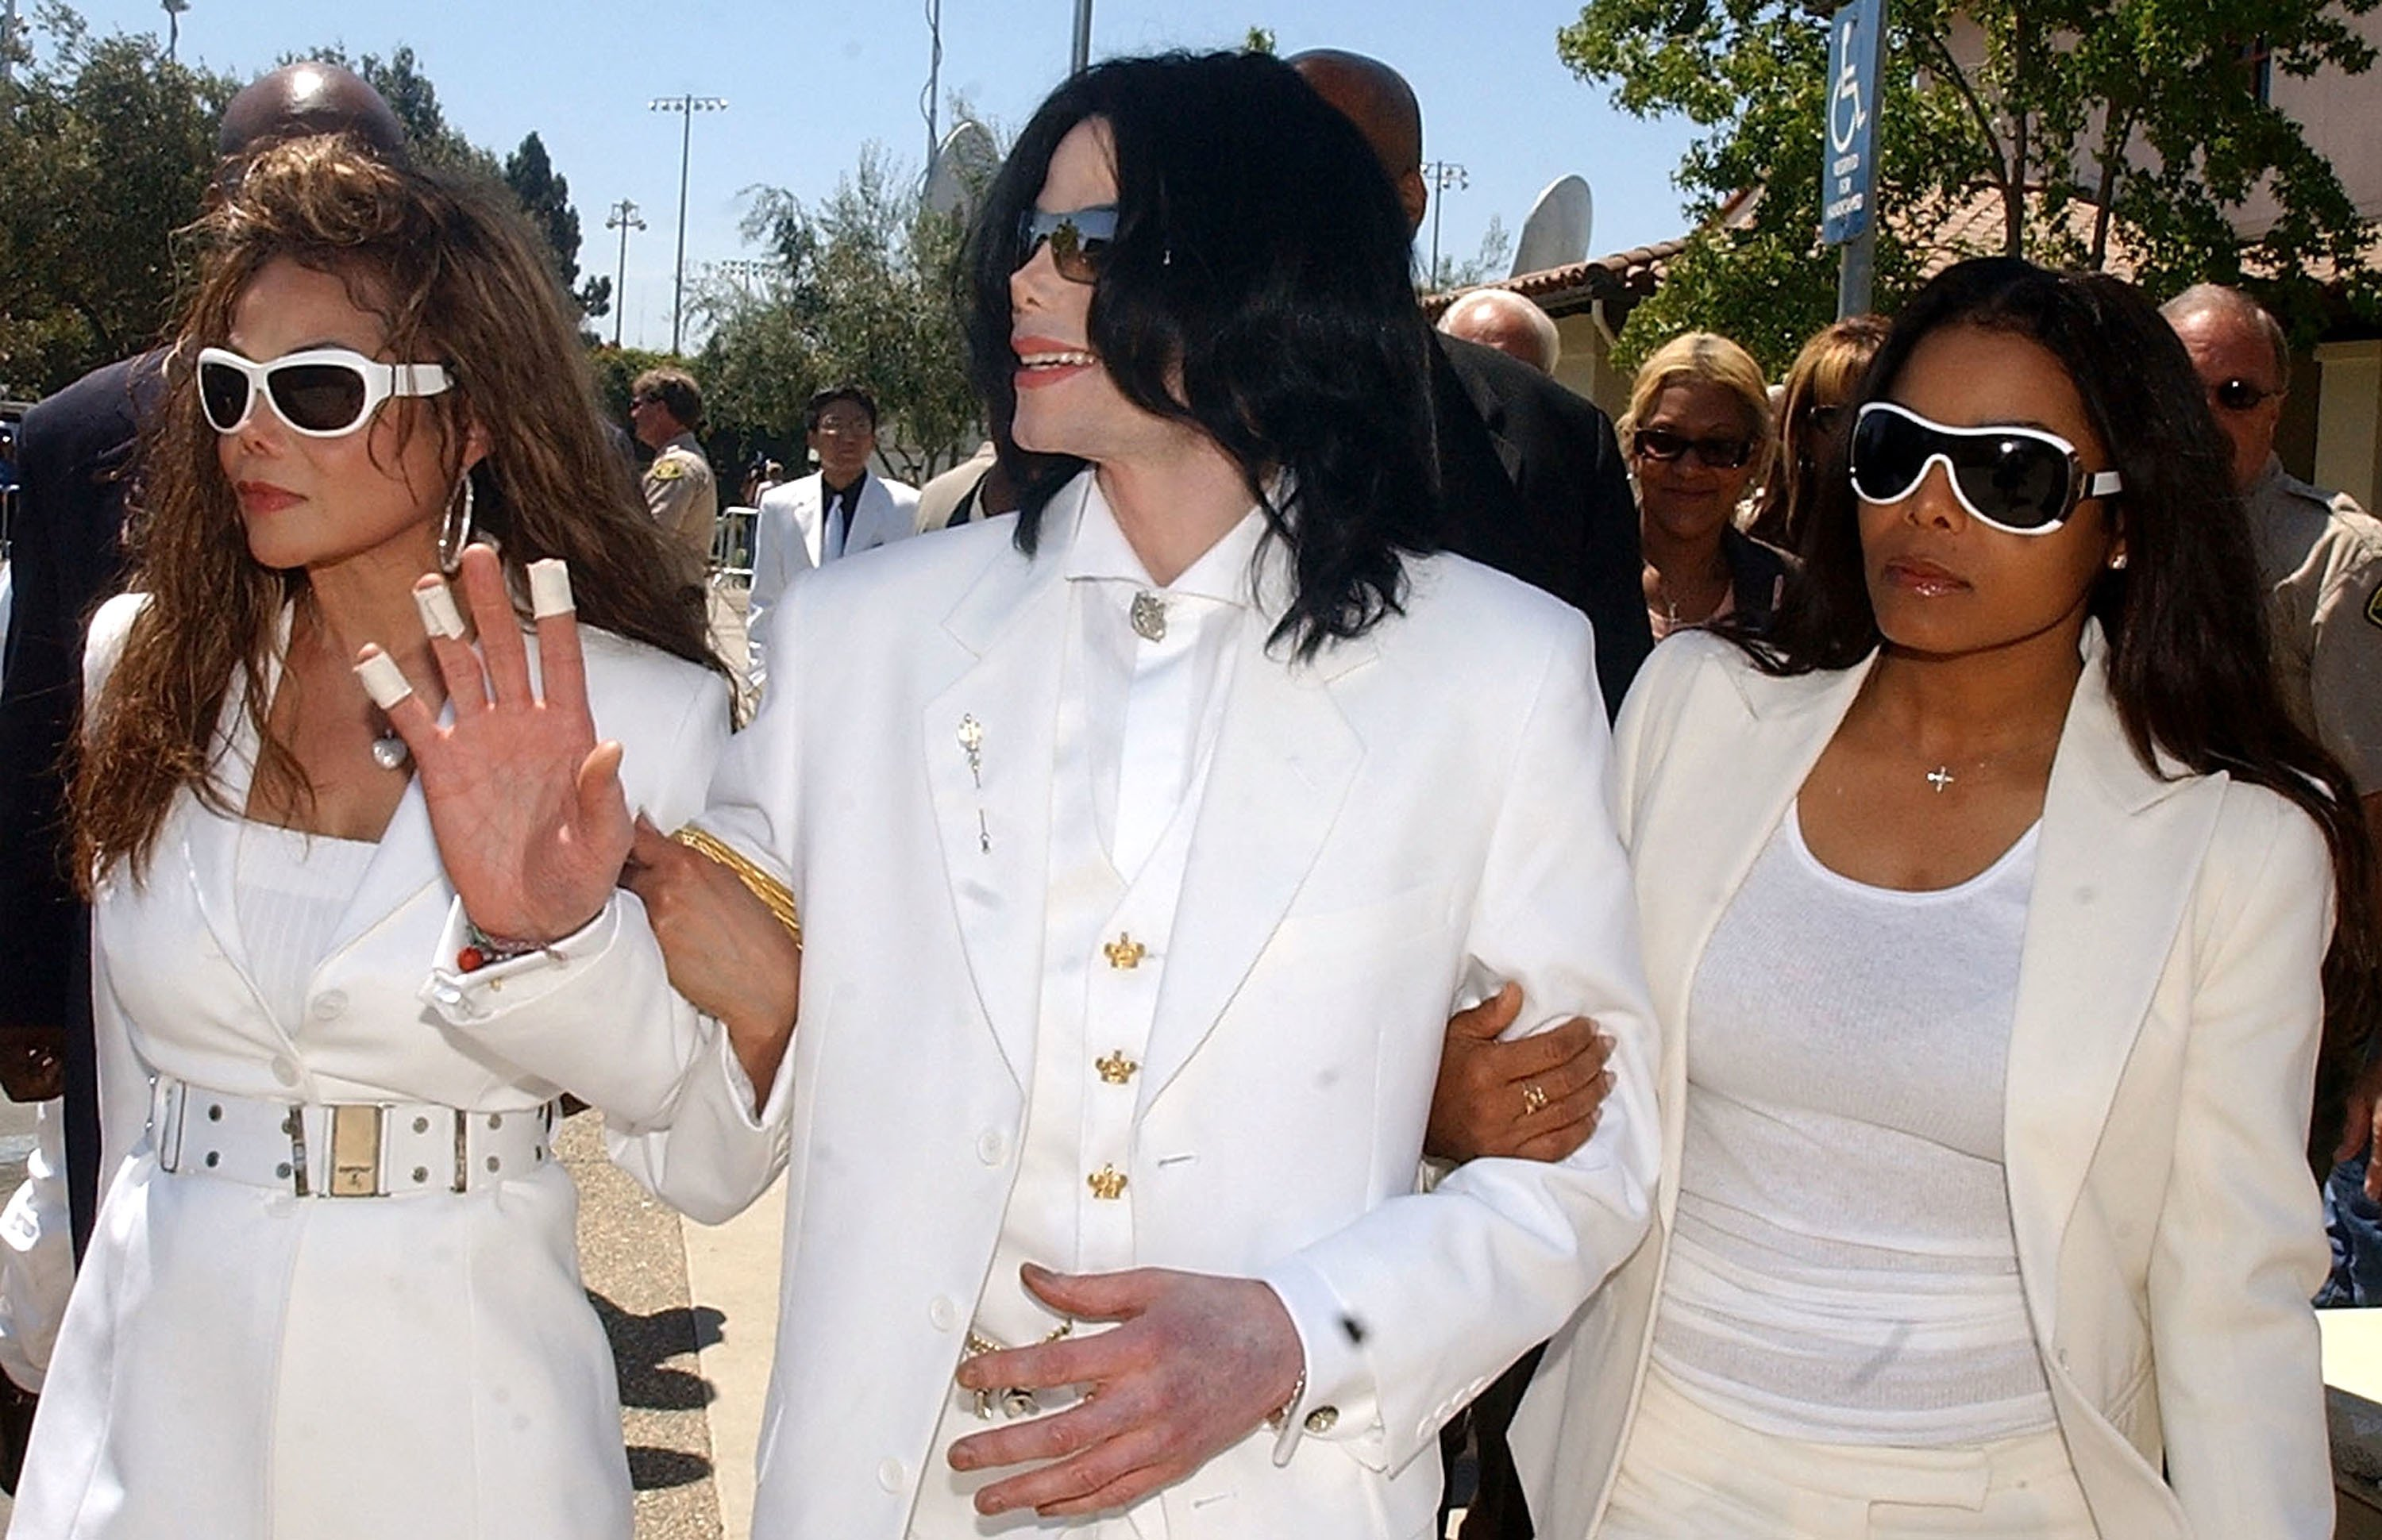 Michael, LaToya and Janet Jackson at the Santa Maria courthouse during the evidentiary hearing in the 2004 child molestation case | Source: Getty Images